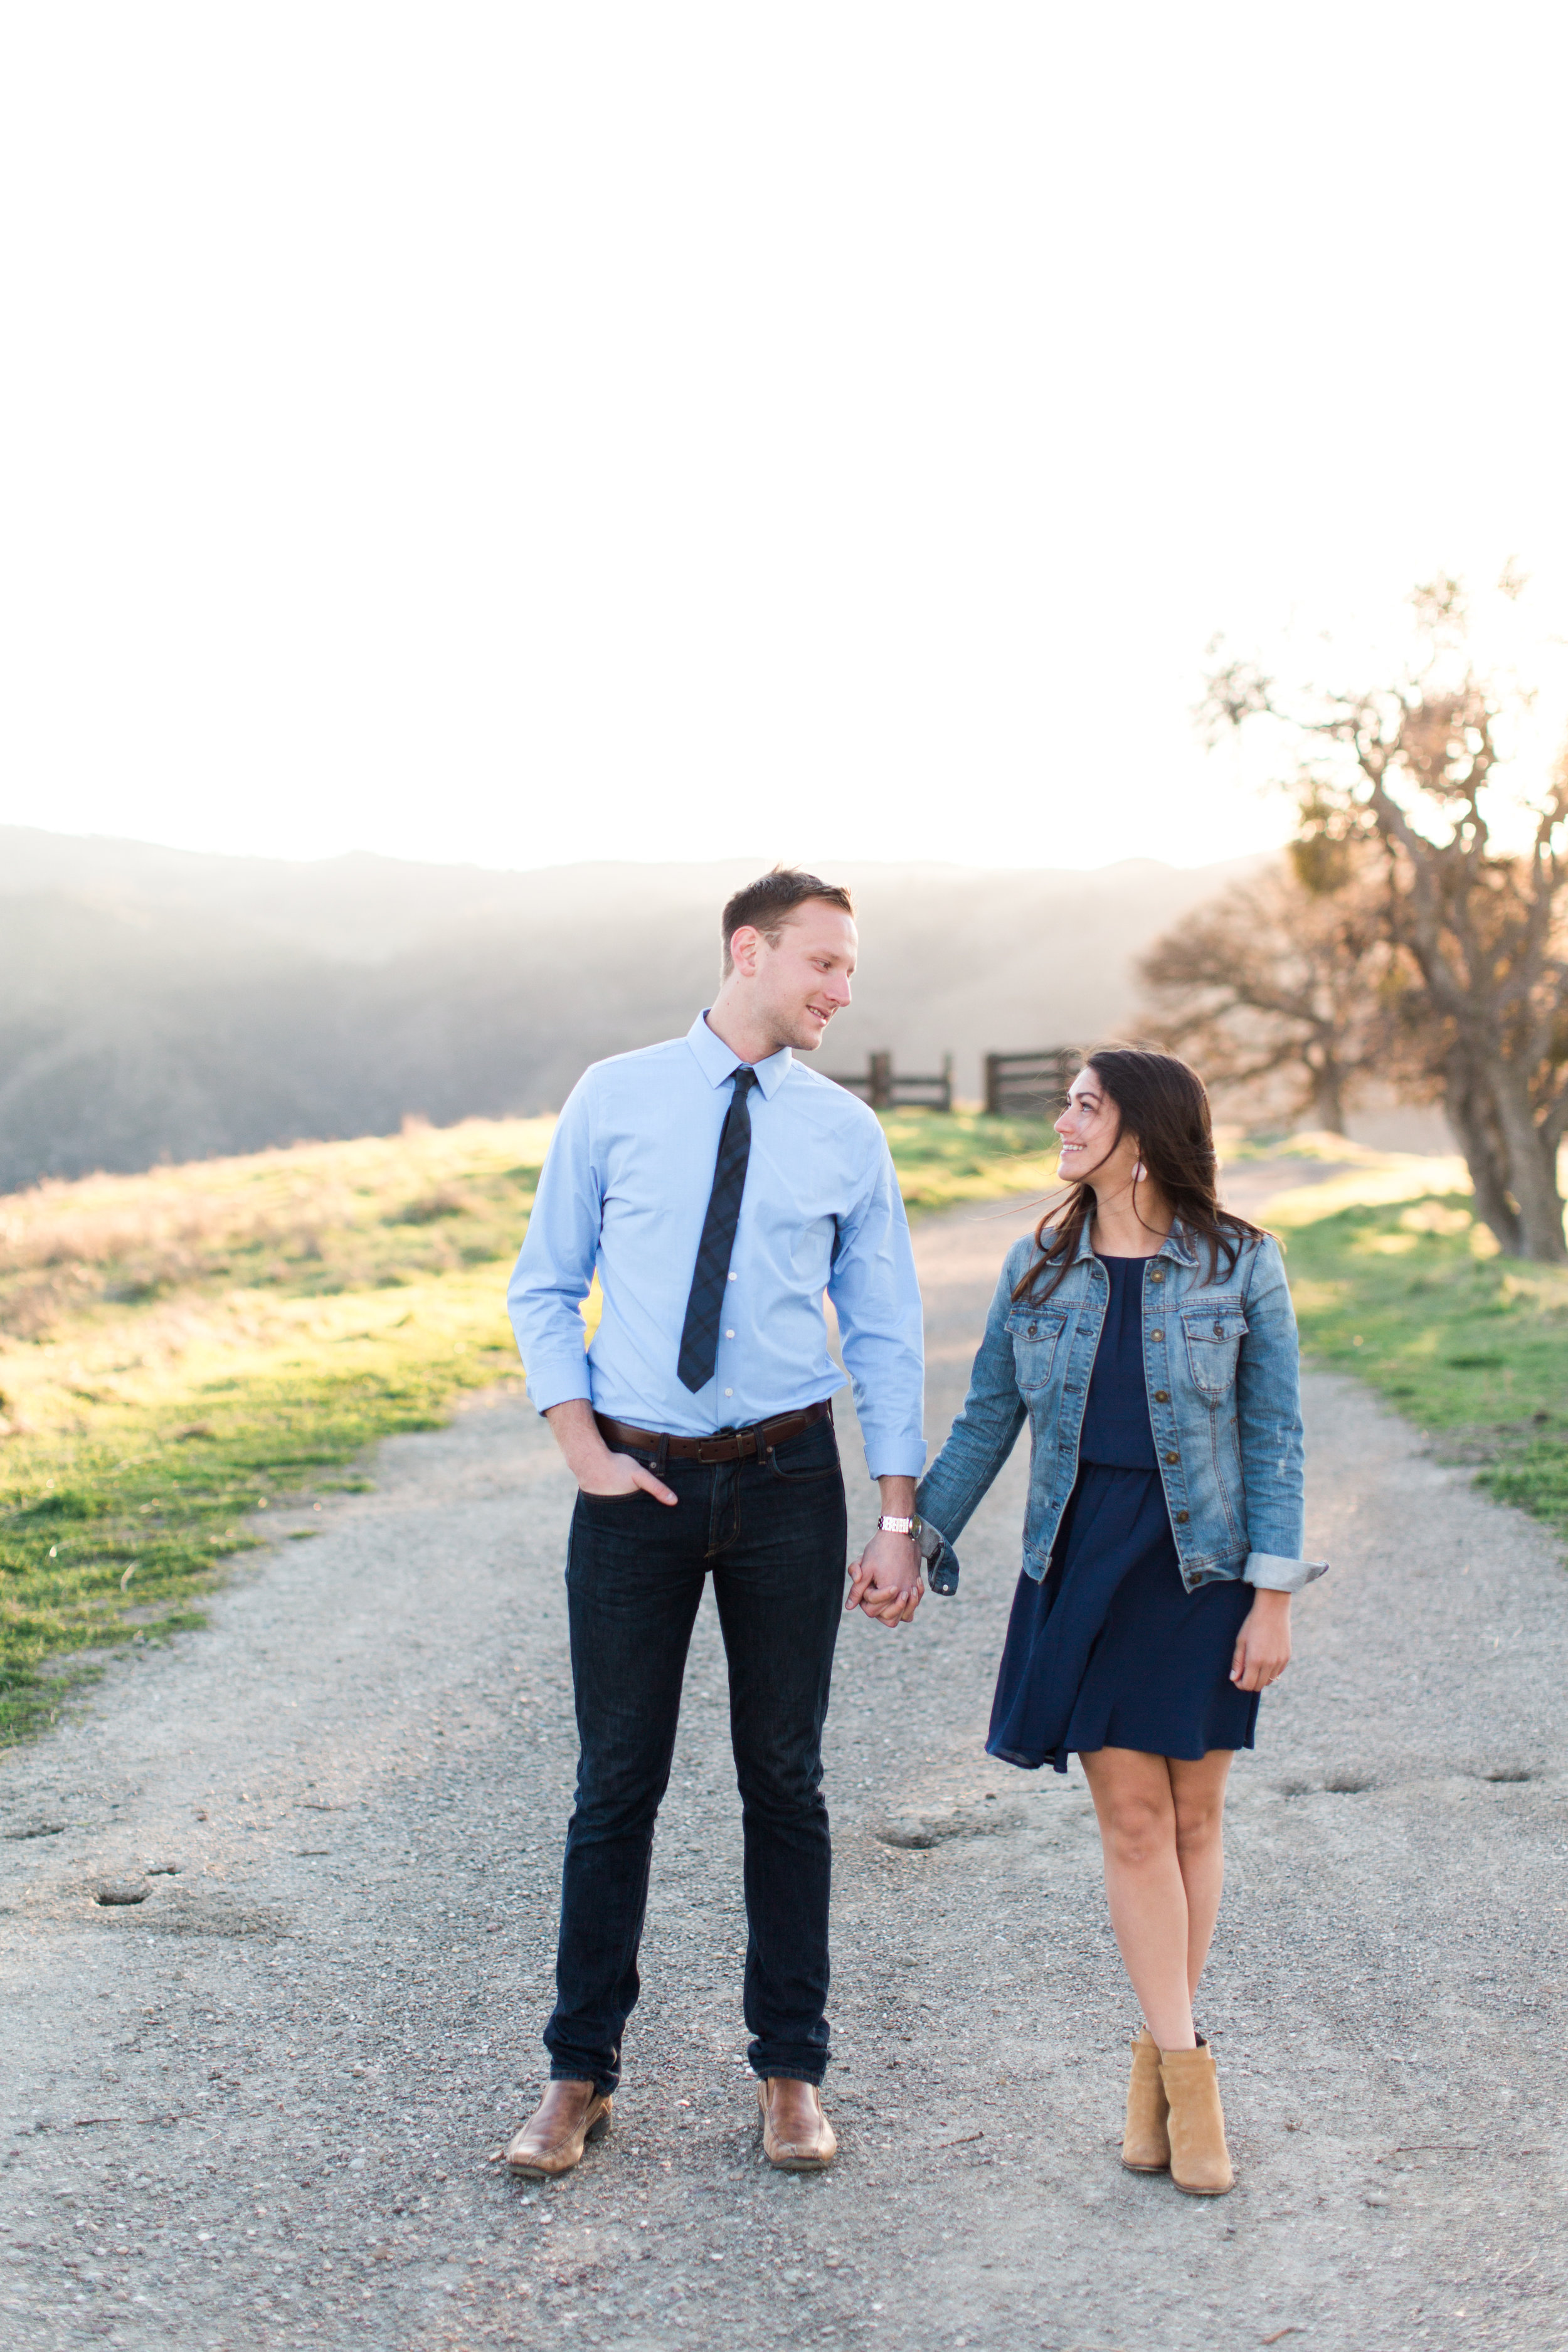 livermore-engagement-photography-at-del-valle-5-2.jpg